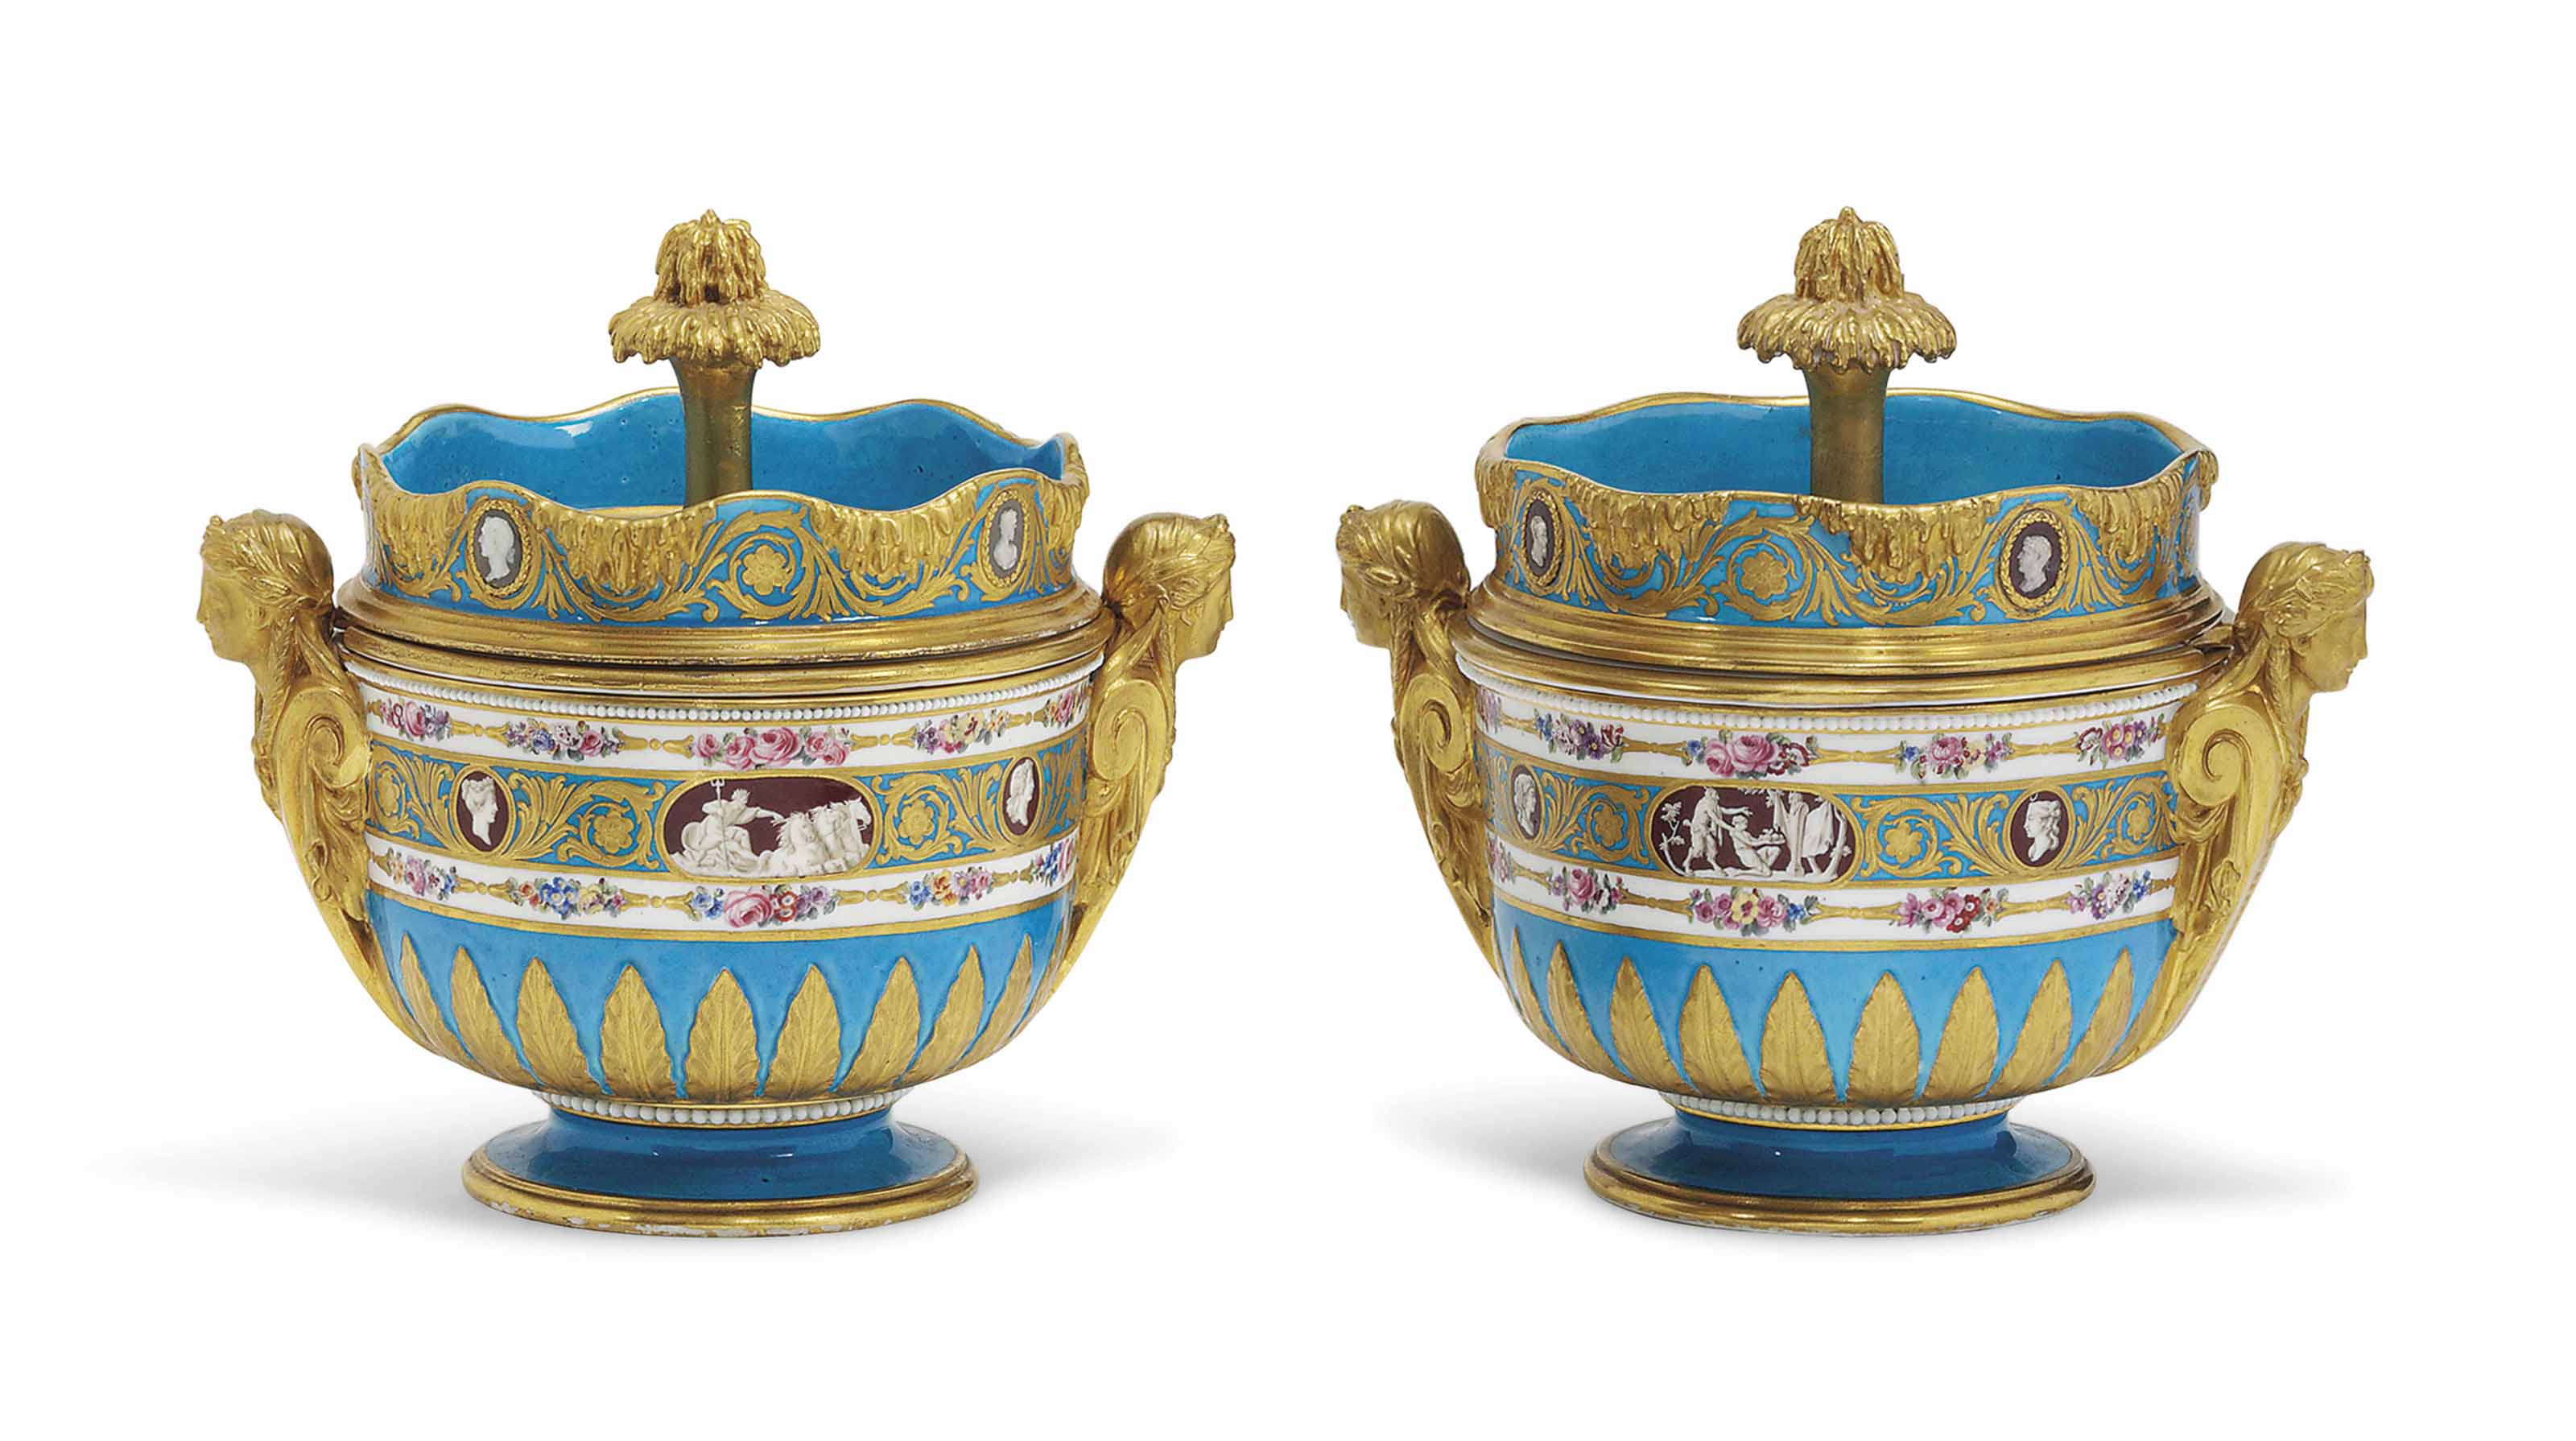 A PAIR OF SEVRES TWO-HANDLED BLEU CELESTE ICE-PAILS, COVERS AND LINERS (SEAUX 'A GLACE') FROM THE CATHERINE THE GREAT SERVICE